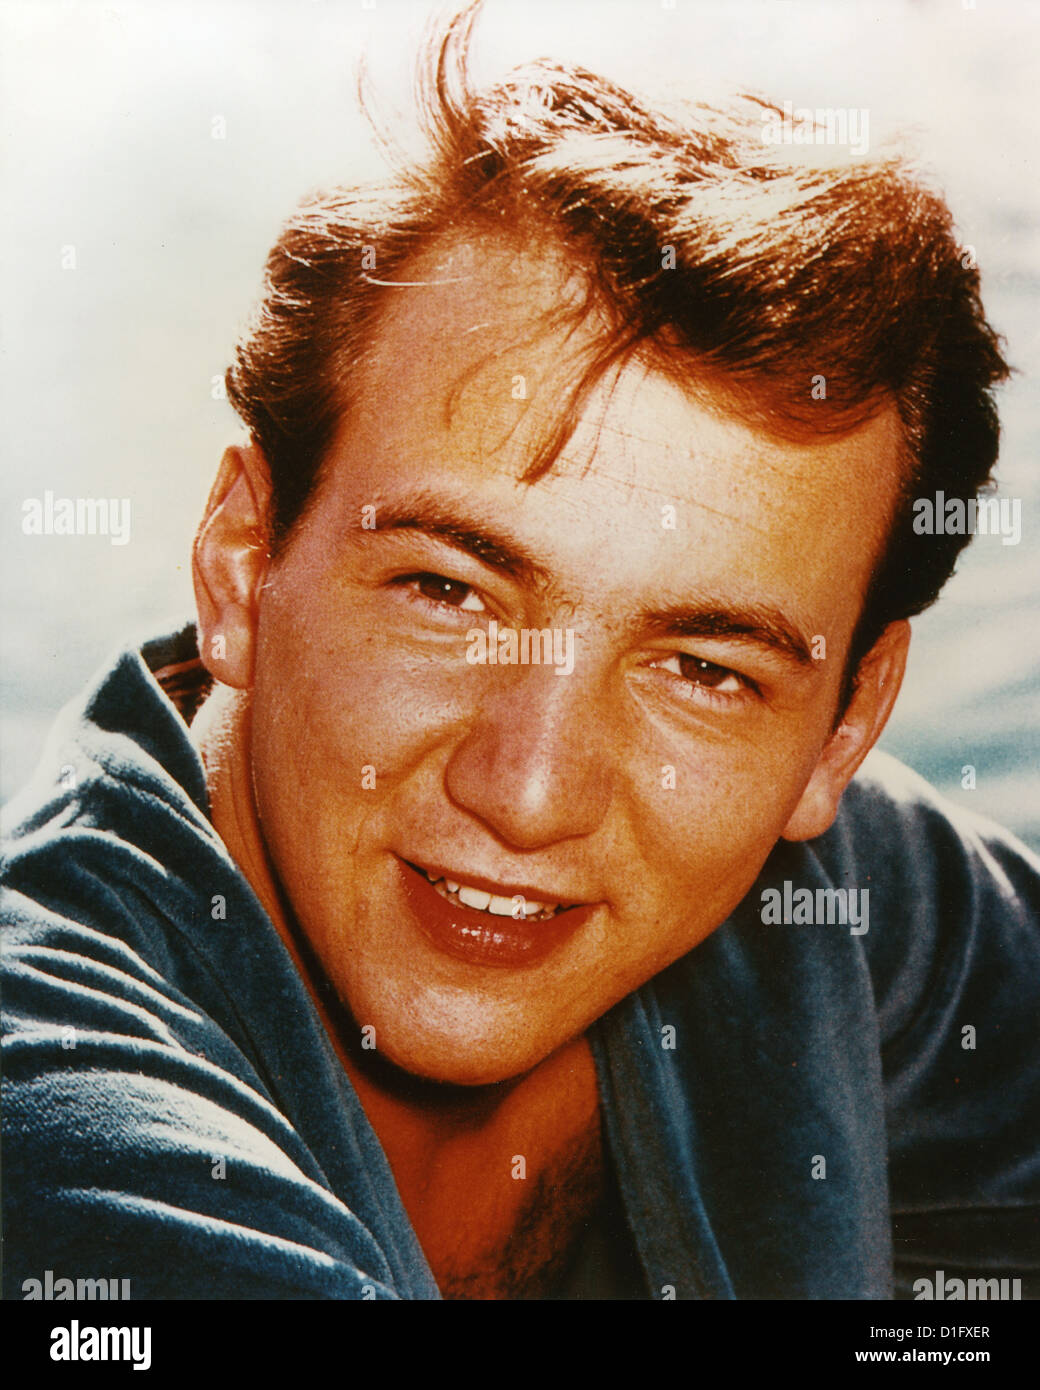 BOBBY DARIN (1936-1973) US singer and film actor in 1959. - Stock Image